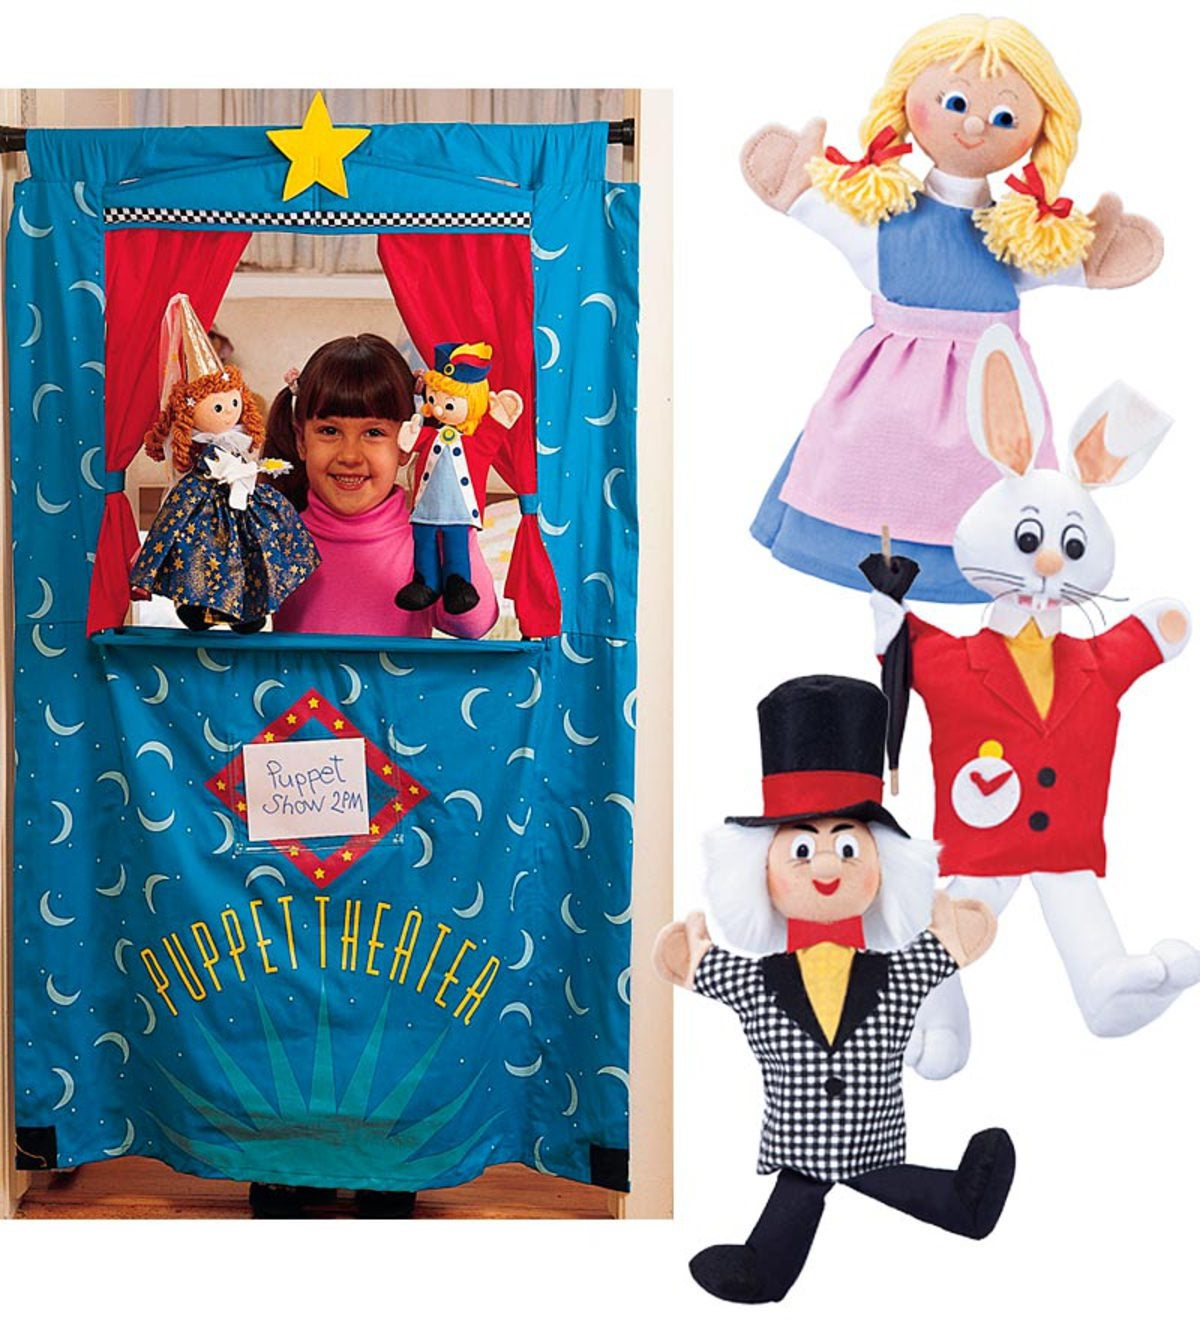 Puppets plus Doorway Puppet Theater Special - Alice in Wonderland